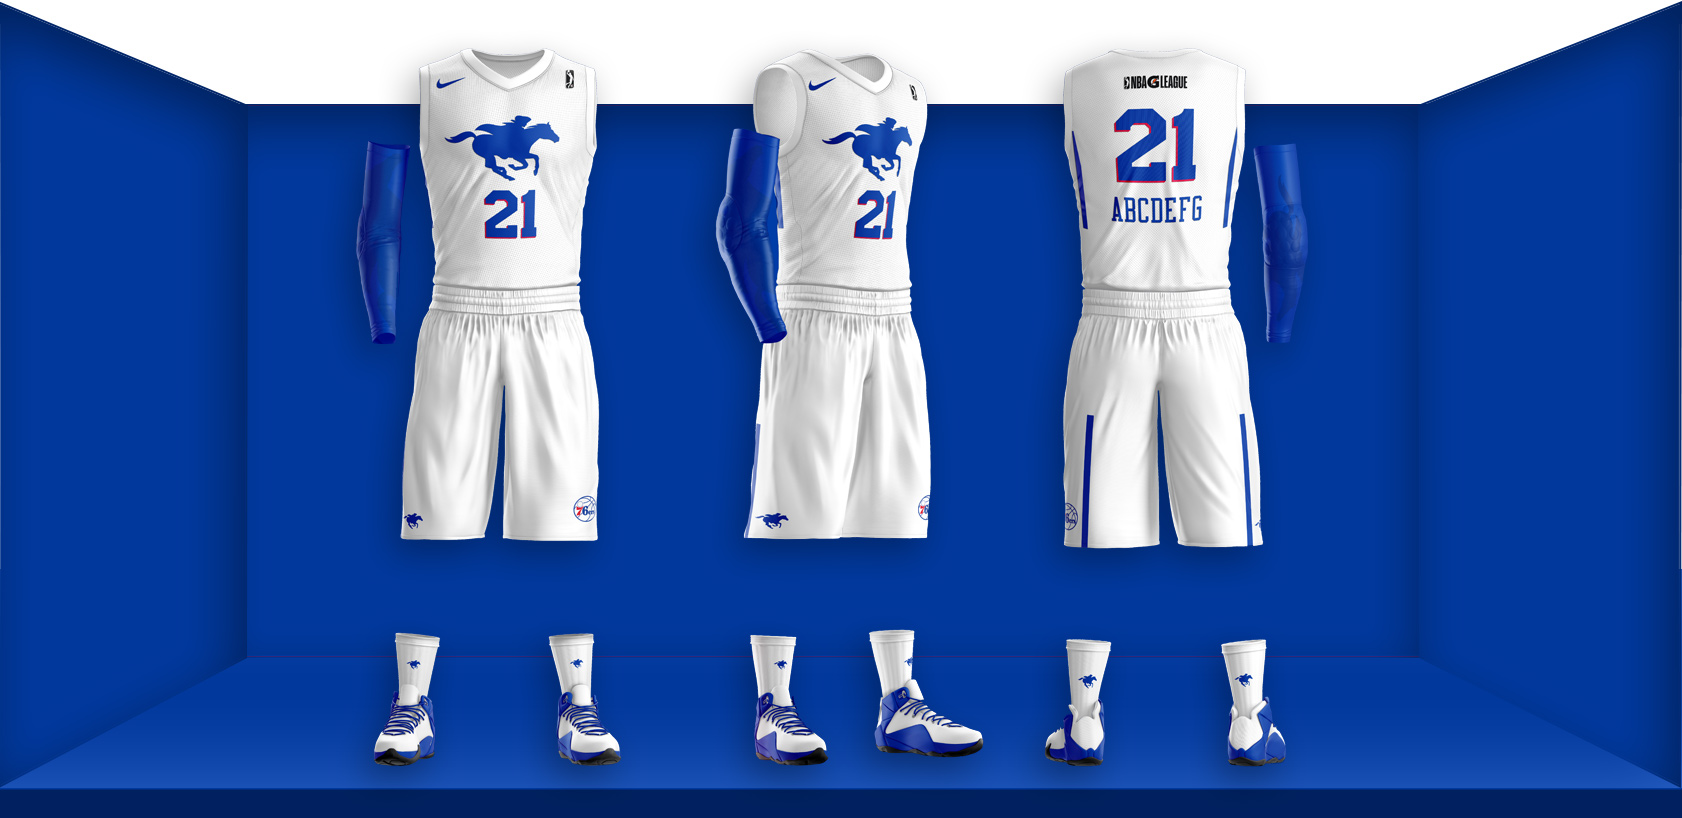 uniform-white.jpg